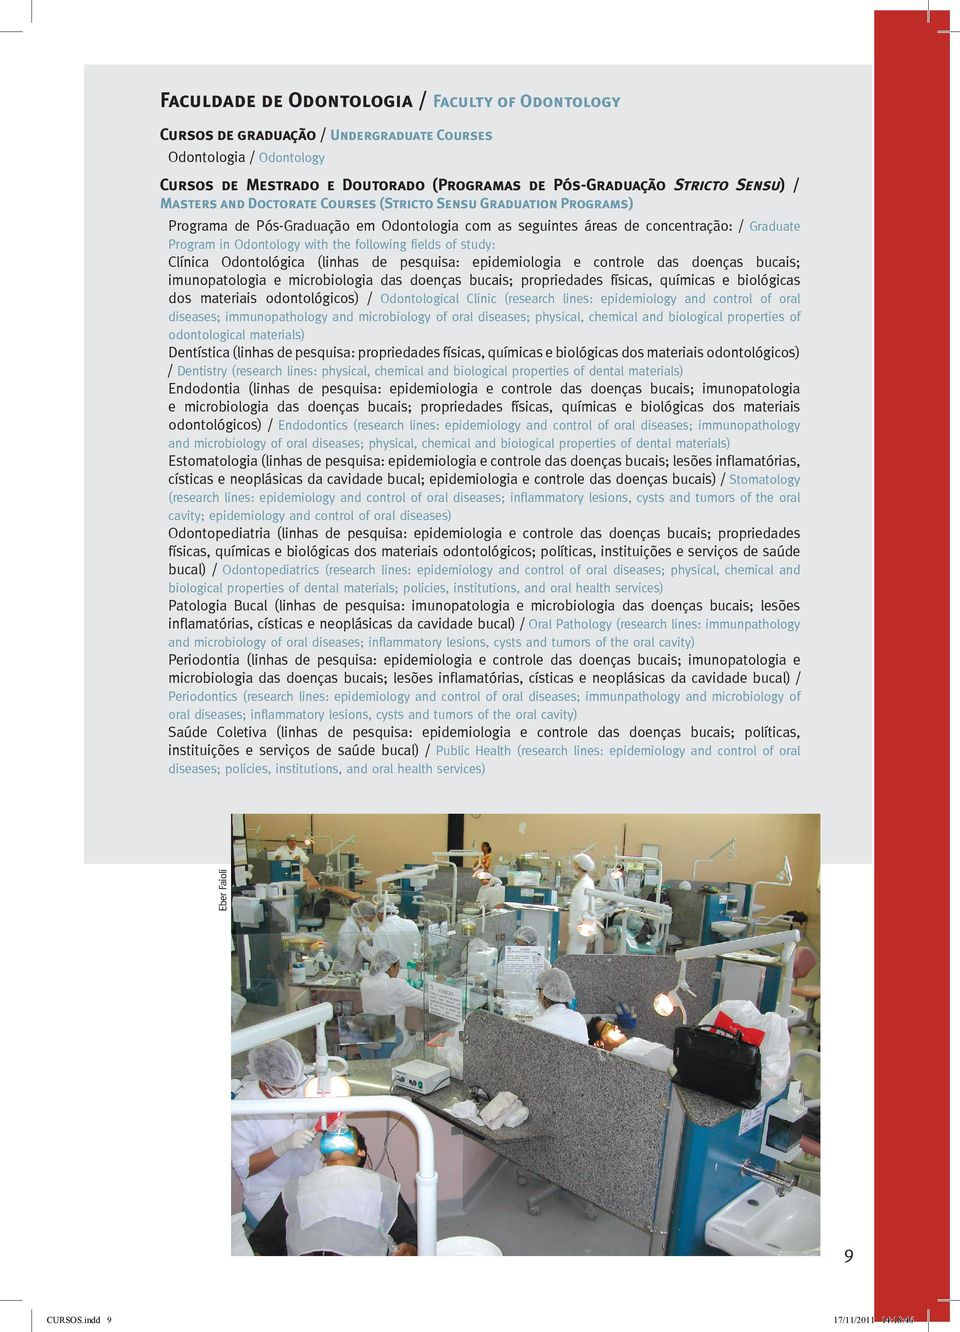 biológicas dos materiais odontológicos) / Odontological Clinic (research lines: epidemiology and control of oral diseases; immunopathology and microbiology of oral diseases; physical, chemical and